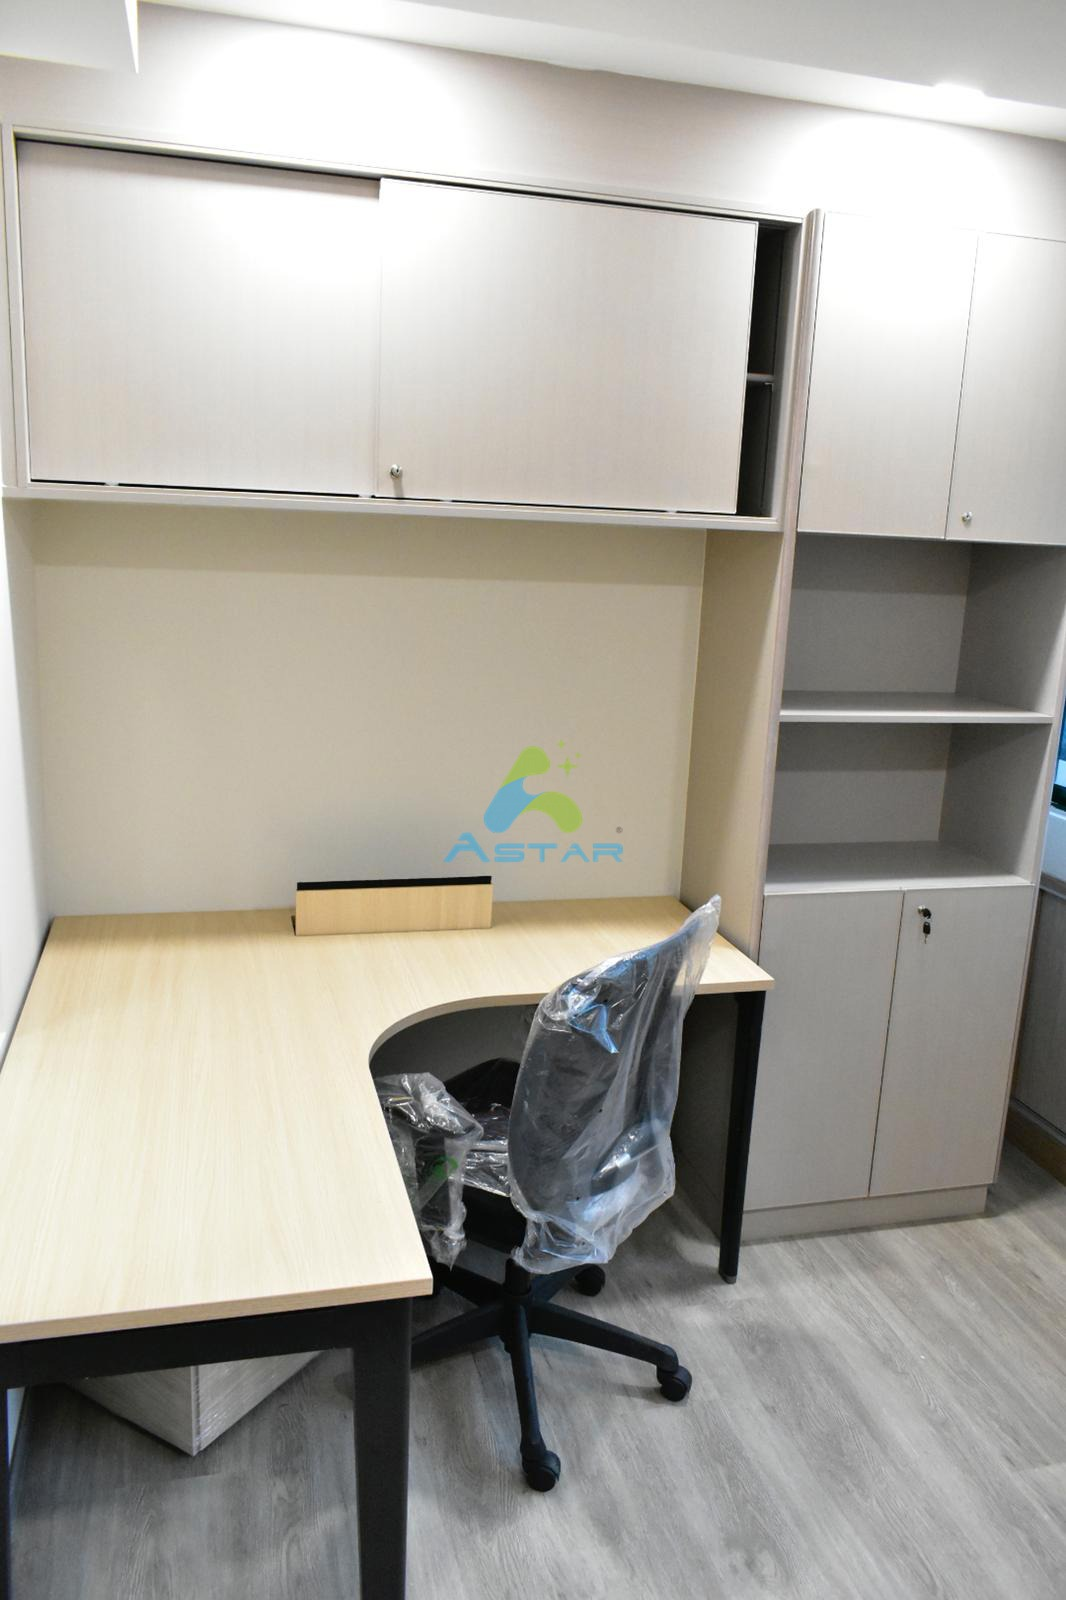 astar furnishing aluminum projects Office at All Saints Church Counselling Center 600 UPPER CHANGI ROAD 30